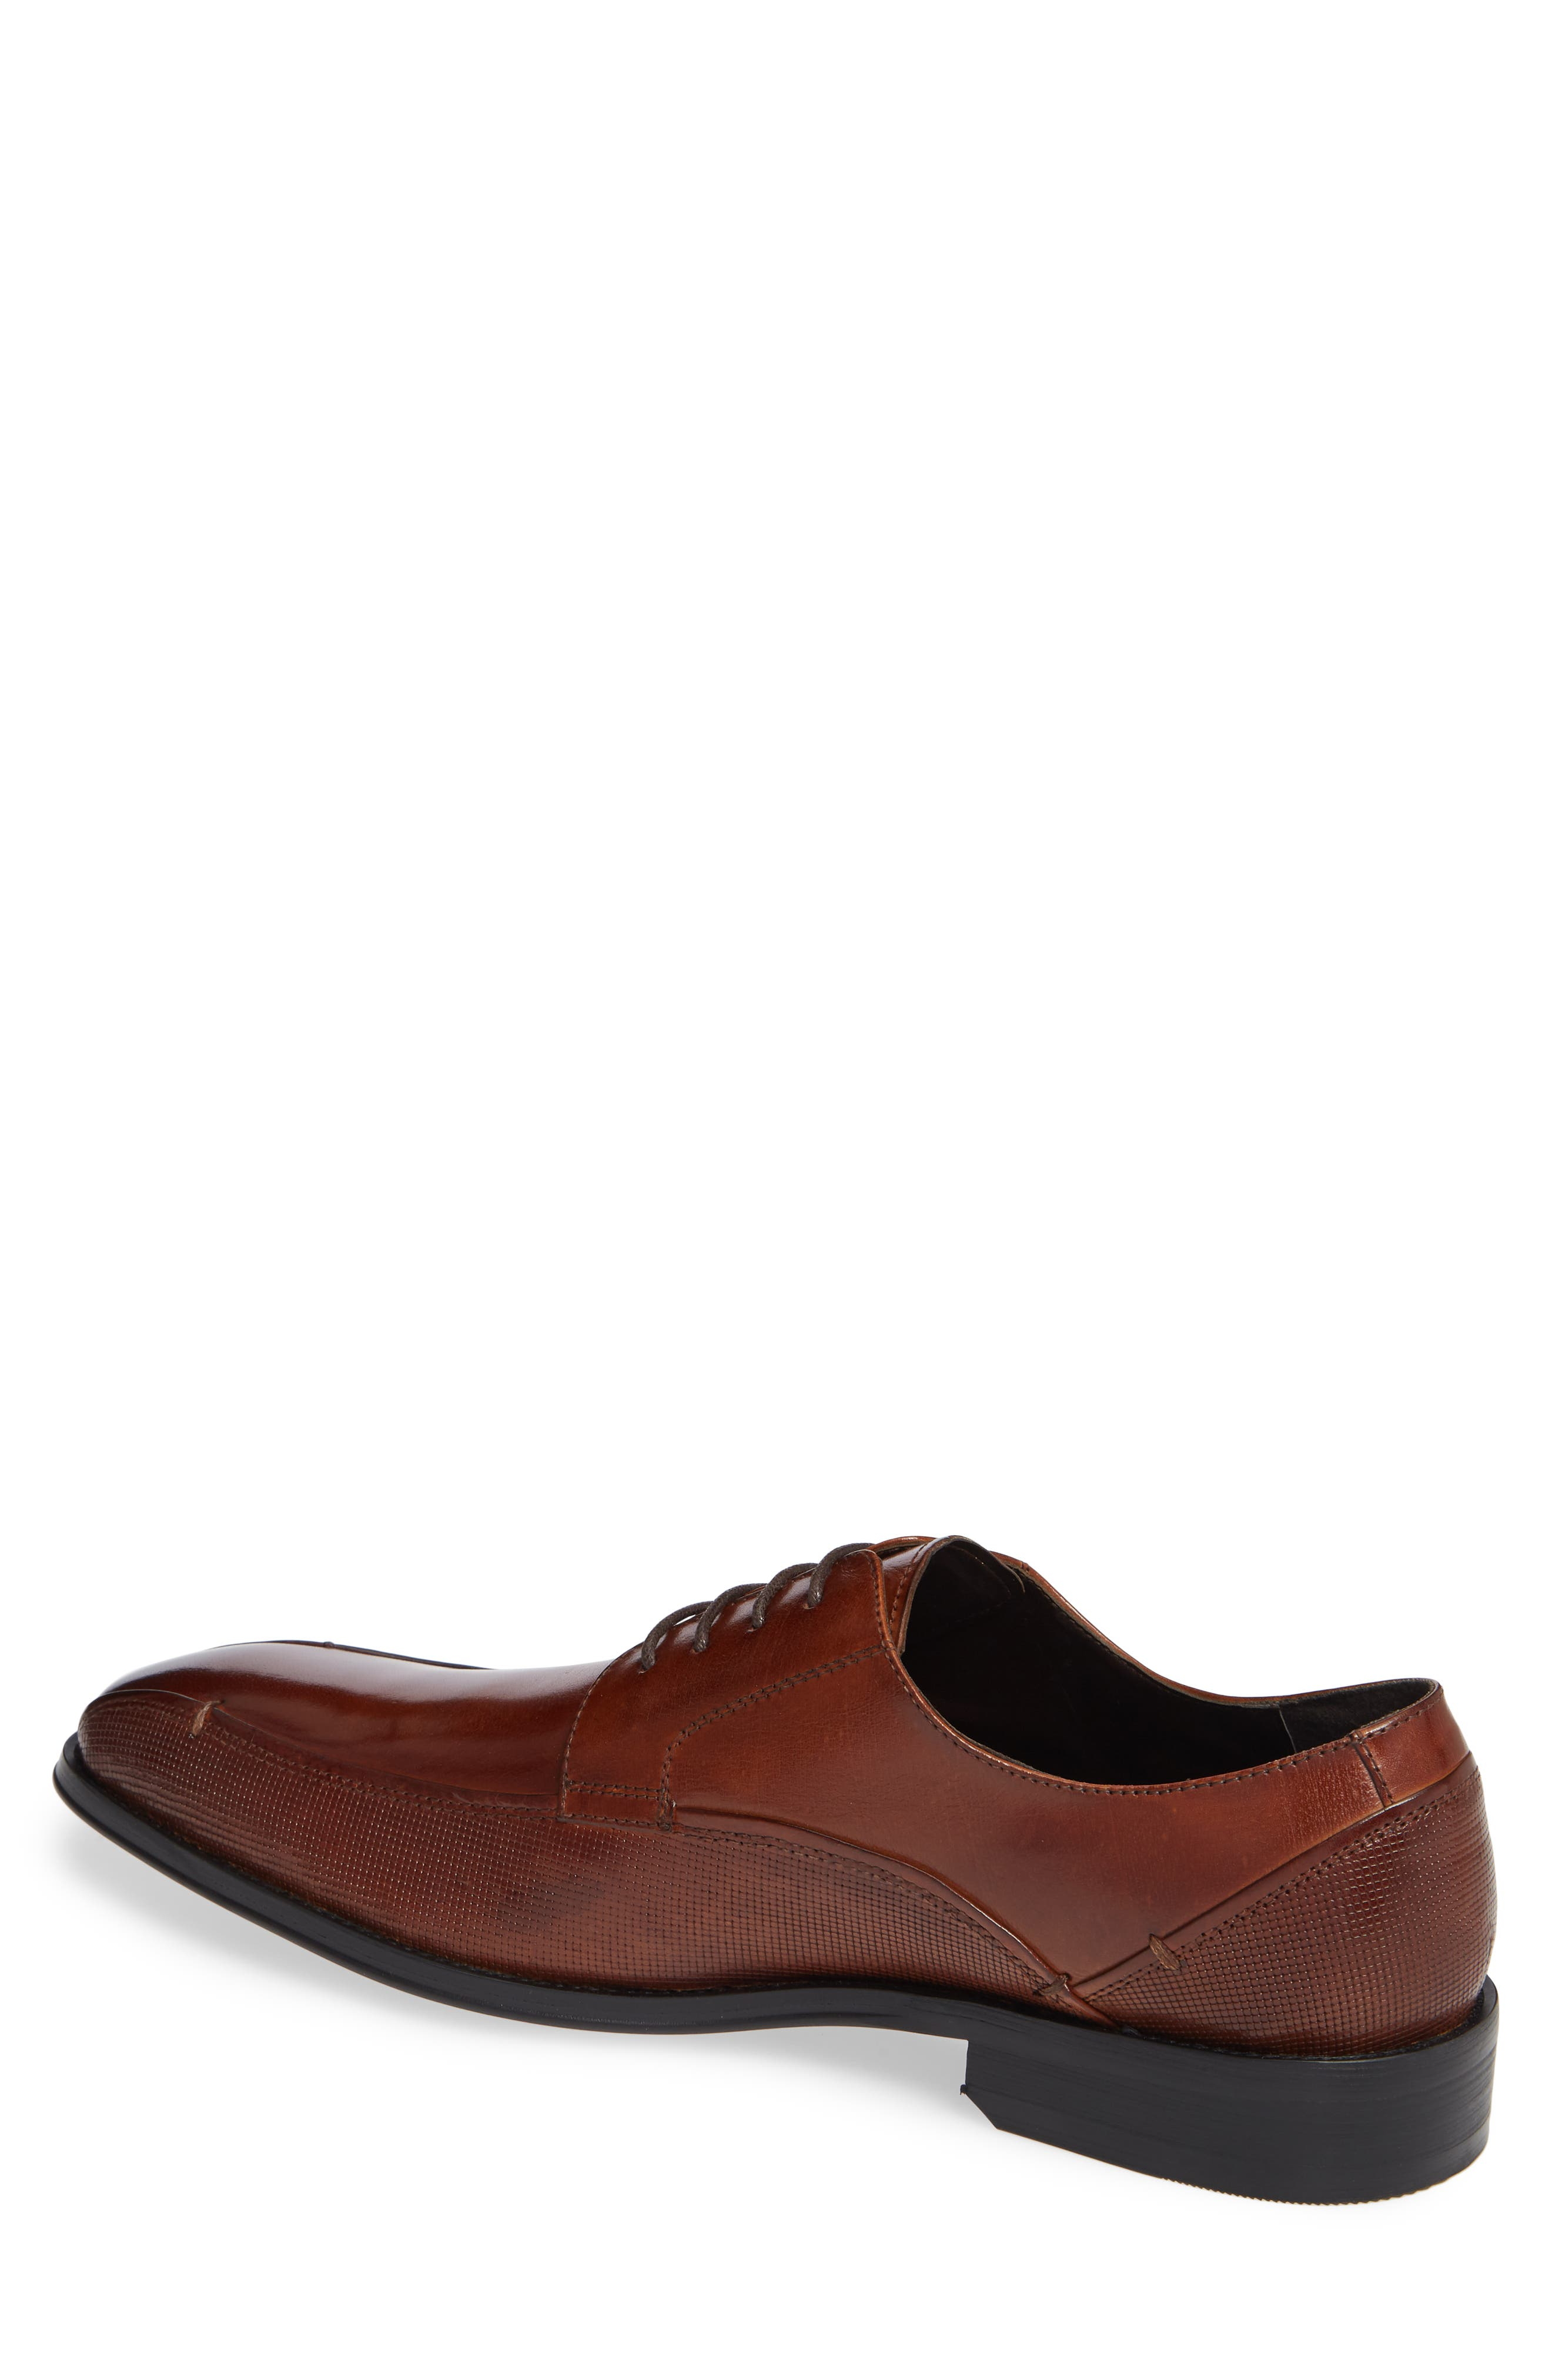 REACTION KENNETH COLE, Witter Textured Bike Toe Derby, Alternate thumbnail 2, color, COGNAC LEATHER